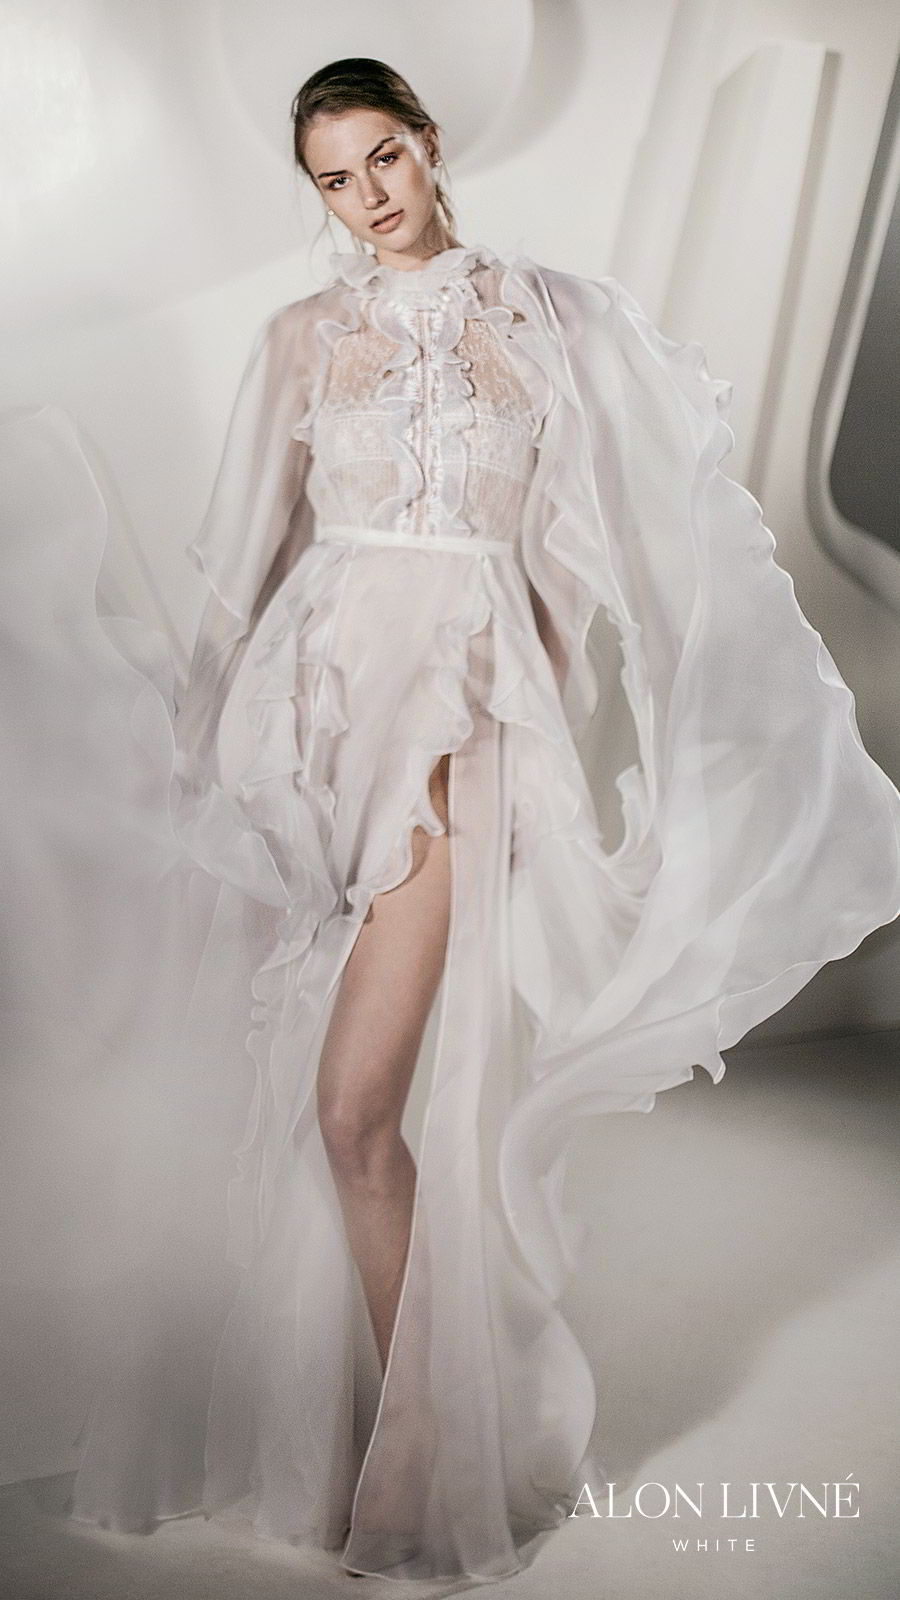 alon livne white spring 2020 bridal long sleeve ruffle high neck sheer bodice a line wedding dress slit skirt  (dylan with jacket) boho romantic mv